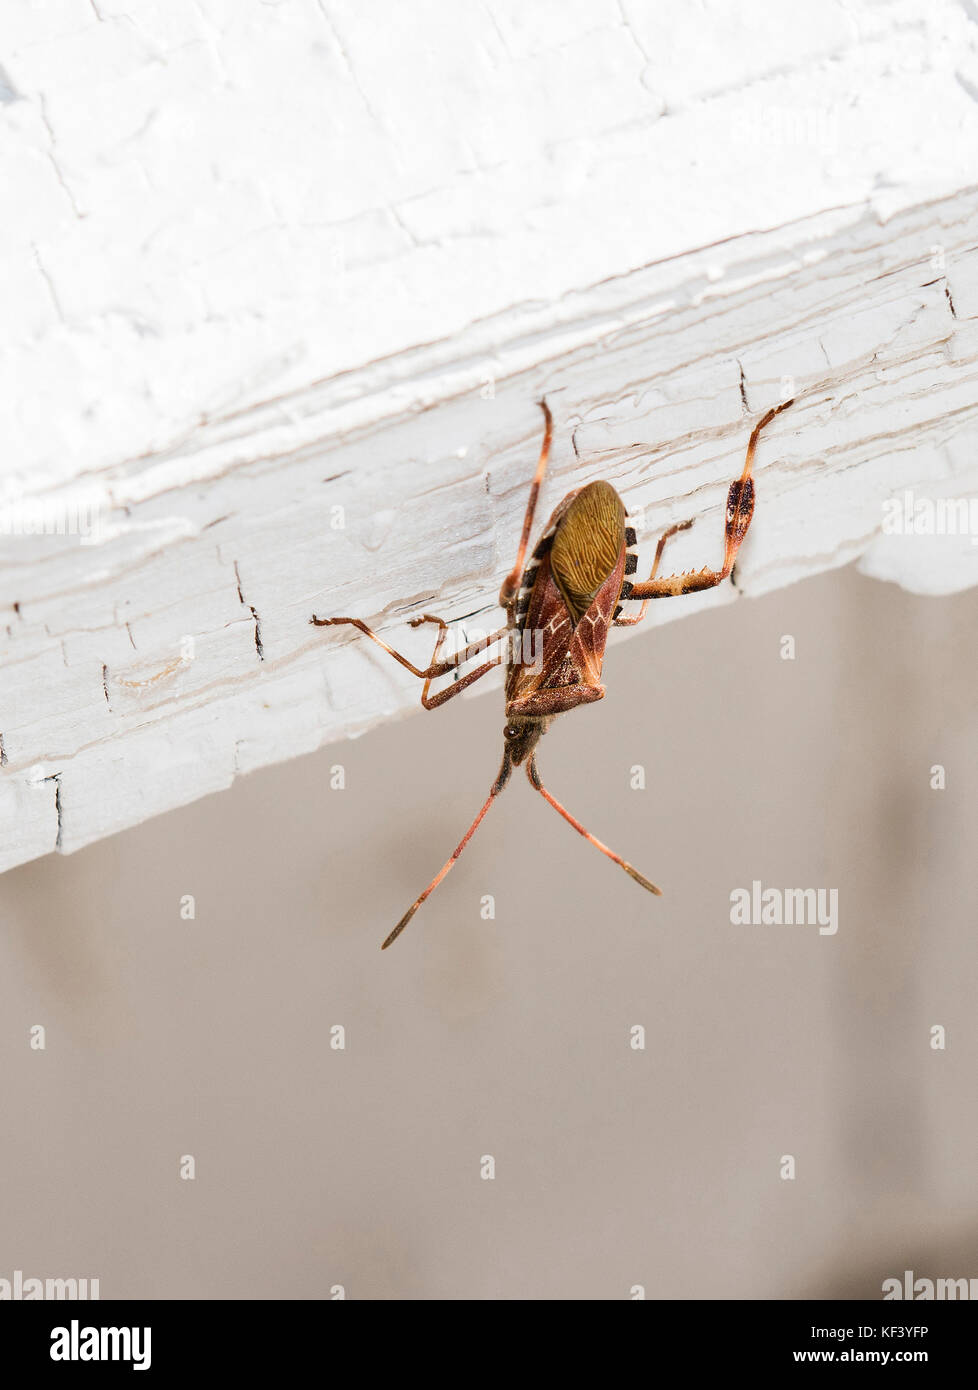 Macro of Western Conifer Seed Bug (Leptoglossus occidentalis) on an Old White Building - Stock Image